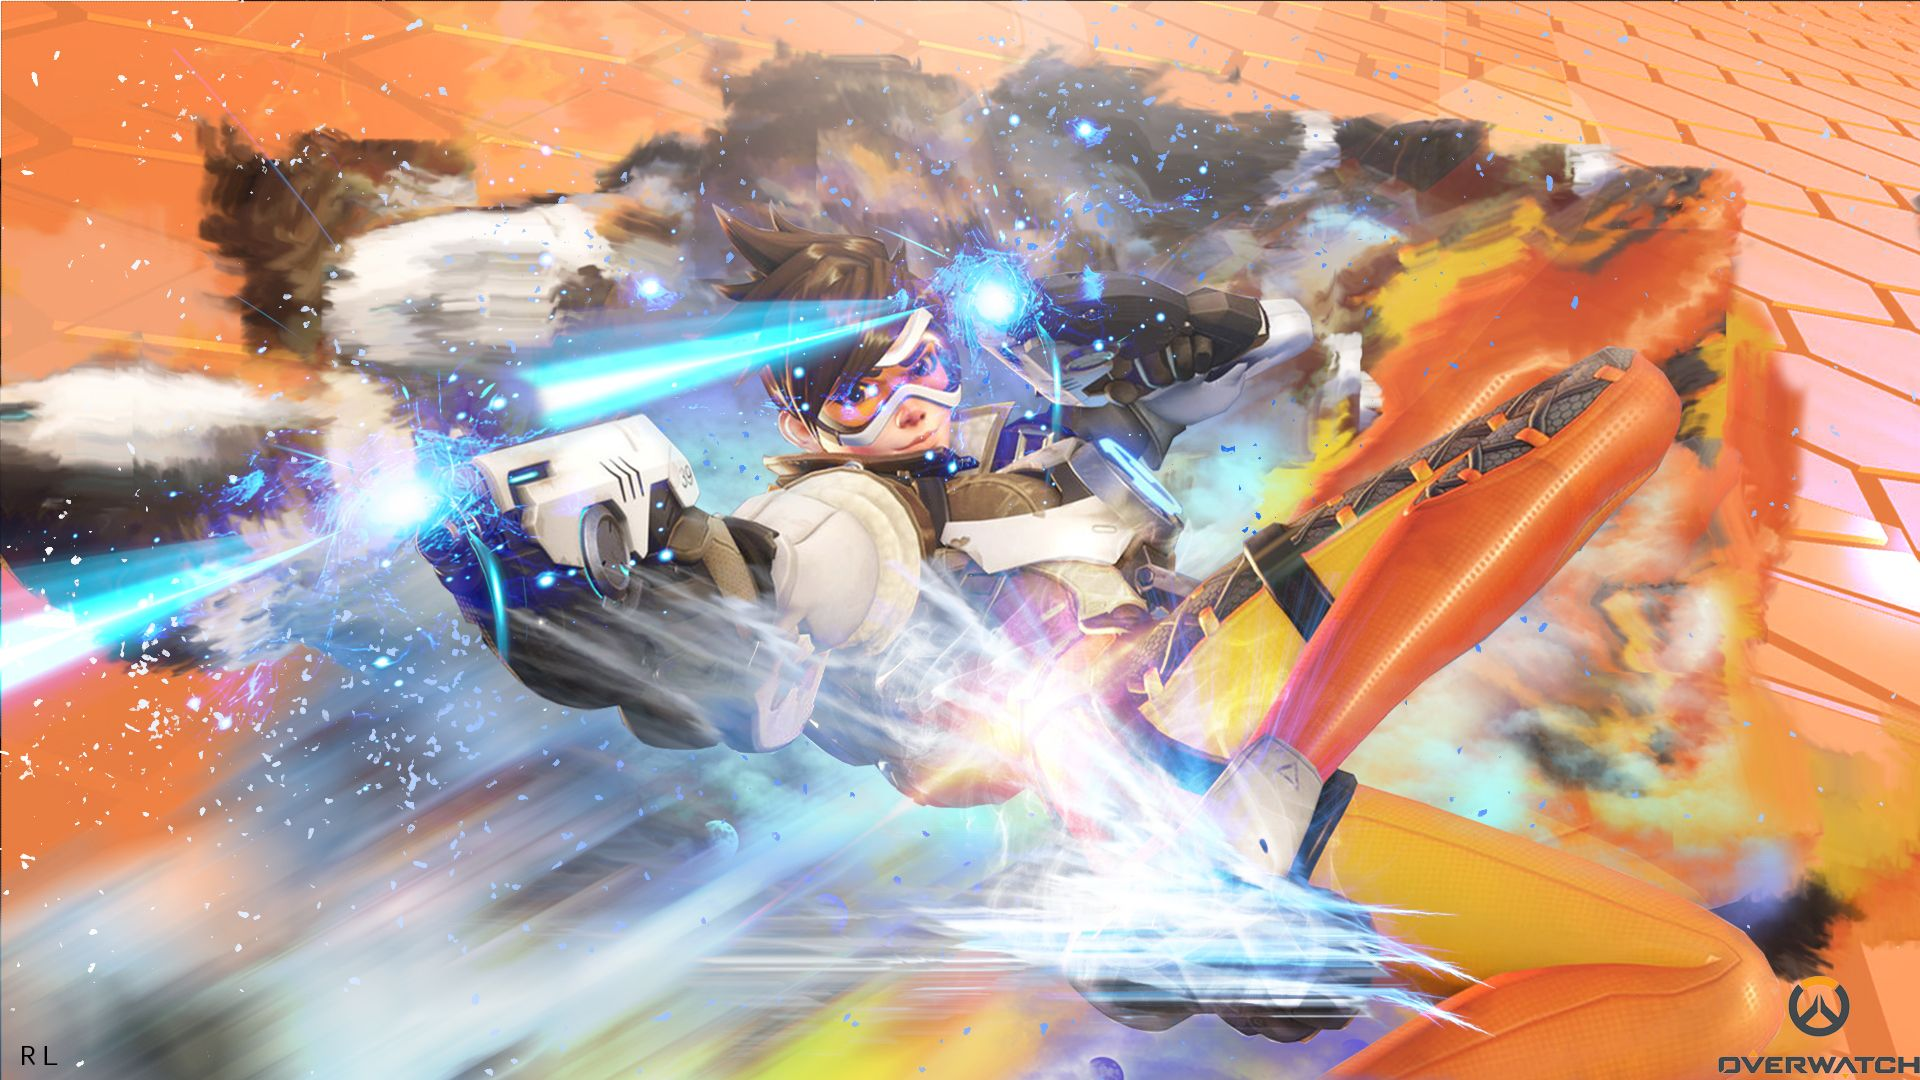 Overwatch Tracer By Rationallife By Rationallife D8638fd Jpg 1920 1080 Overwatch Tracer Overwatch Wallpapers Overwatch